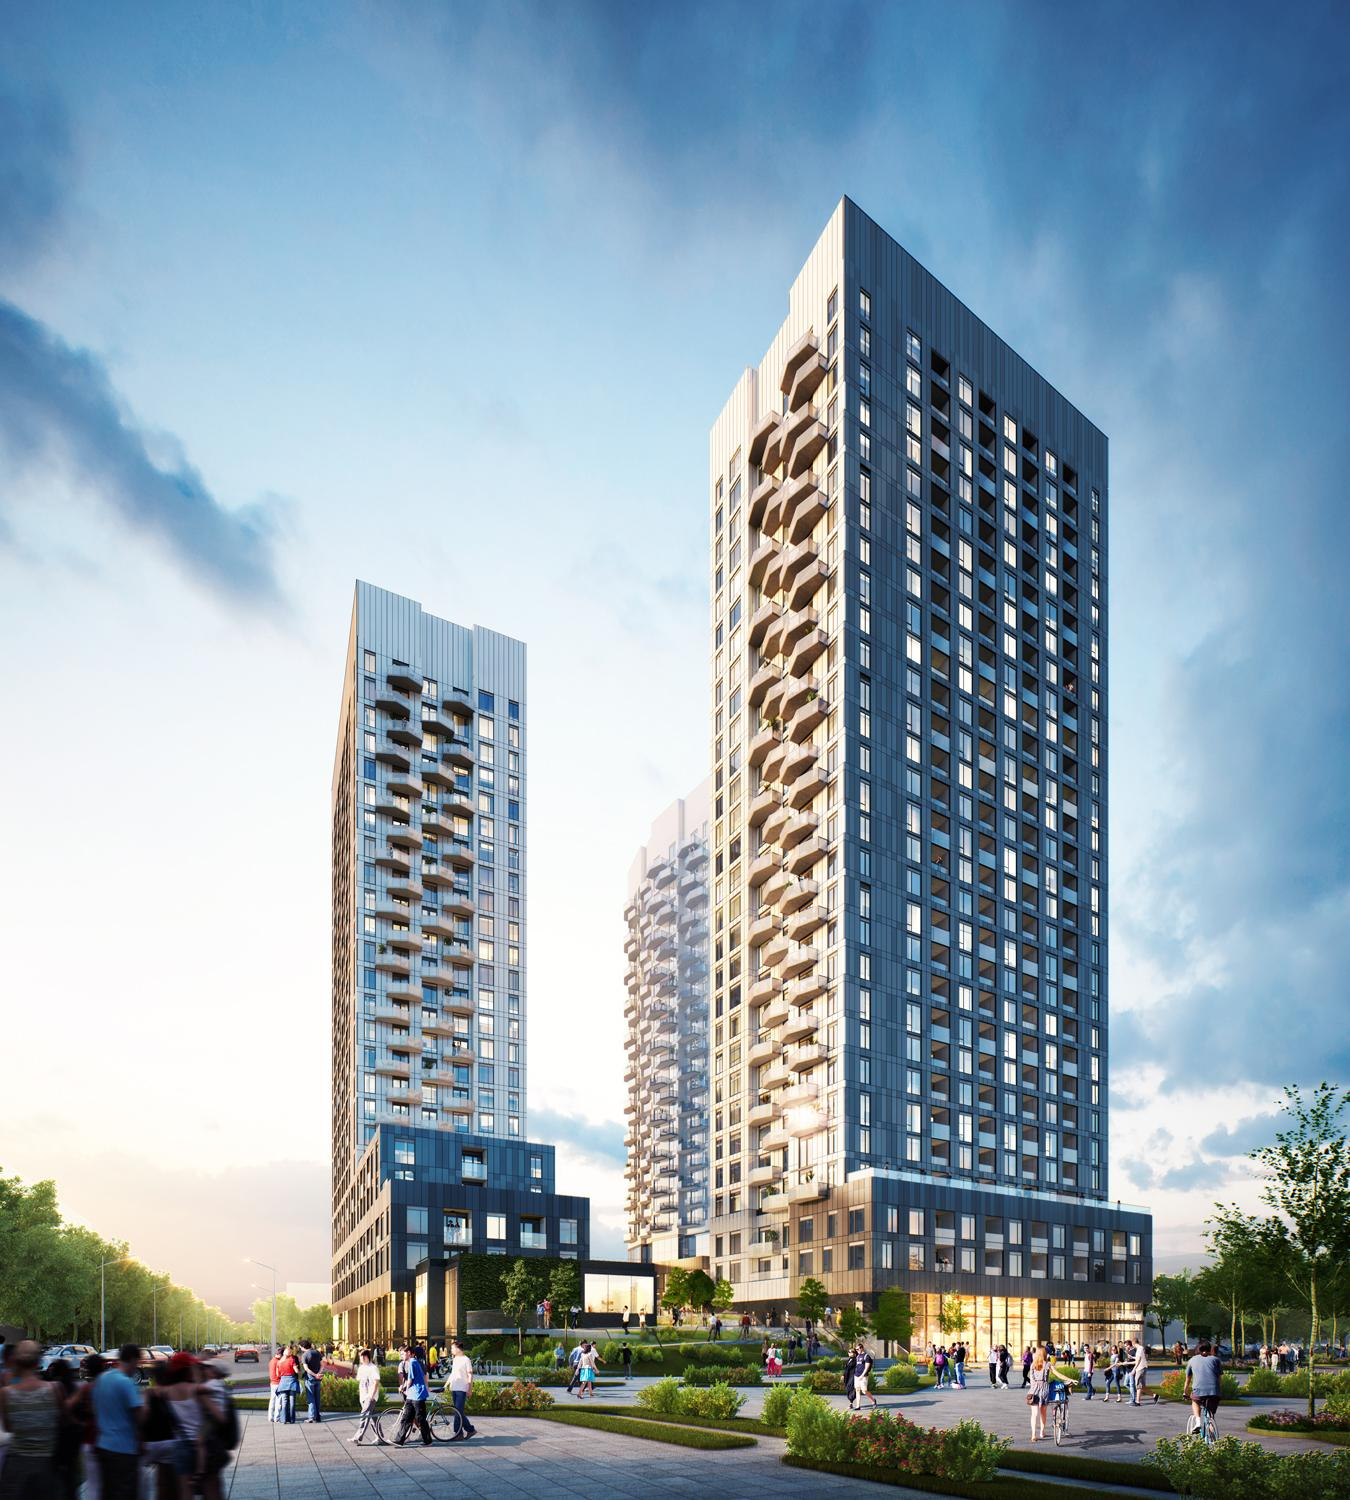 rendering of a three towered condo building with retail in the shared podium, with the towers arranged around an internal courtyard